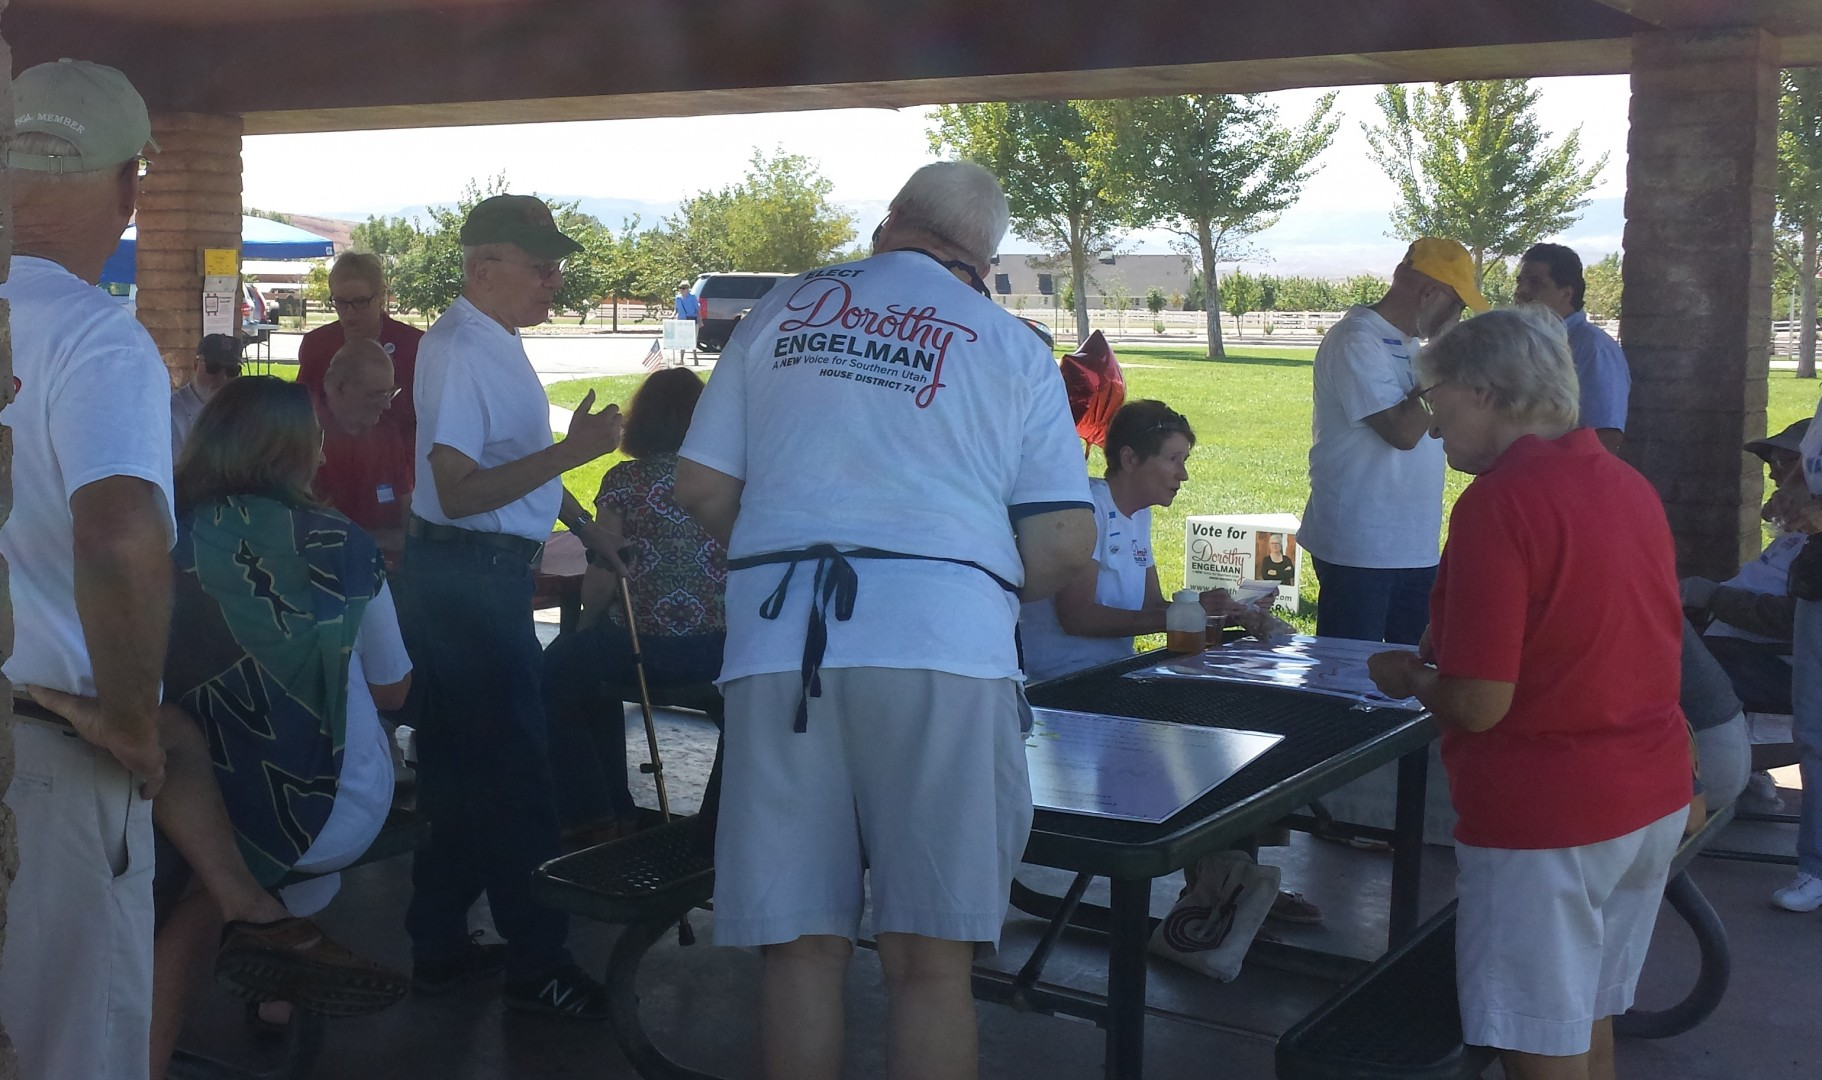 Dorothy Engelman campaign kickoff. Bloomington Park, St. George, Utah. Sept 6, 2014 | Photo by T.S Romney St. George News